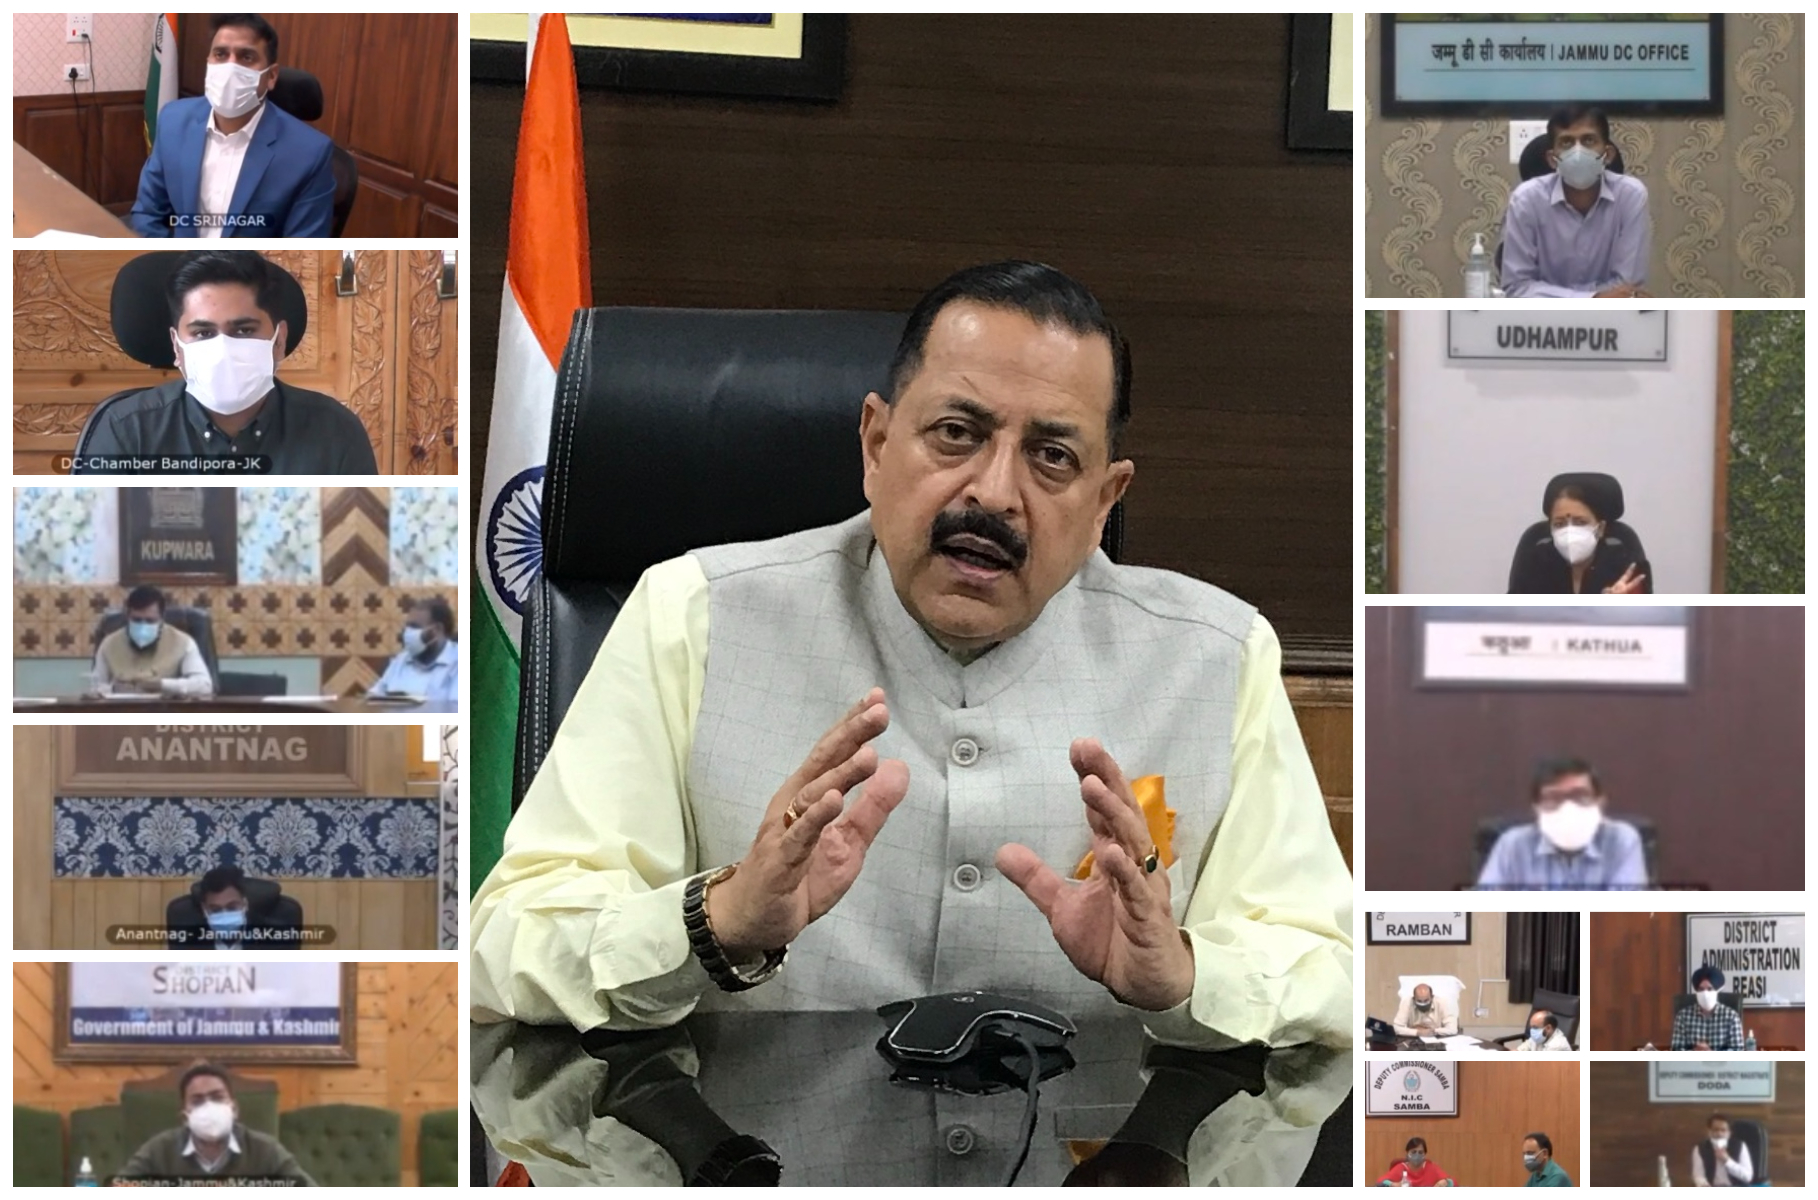 Union Minister Dr Jitendra Singhcalls for revival of free Tele-Consultation facilities in all districts of Jammu & Kashmir for rural and home isolation patients